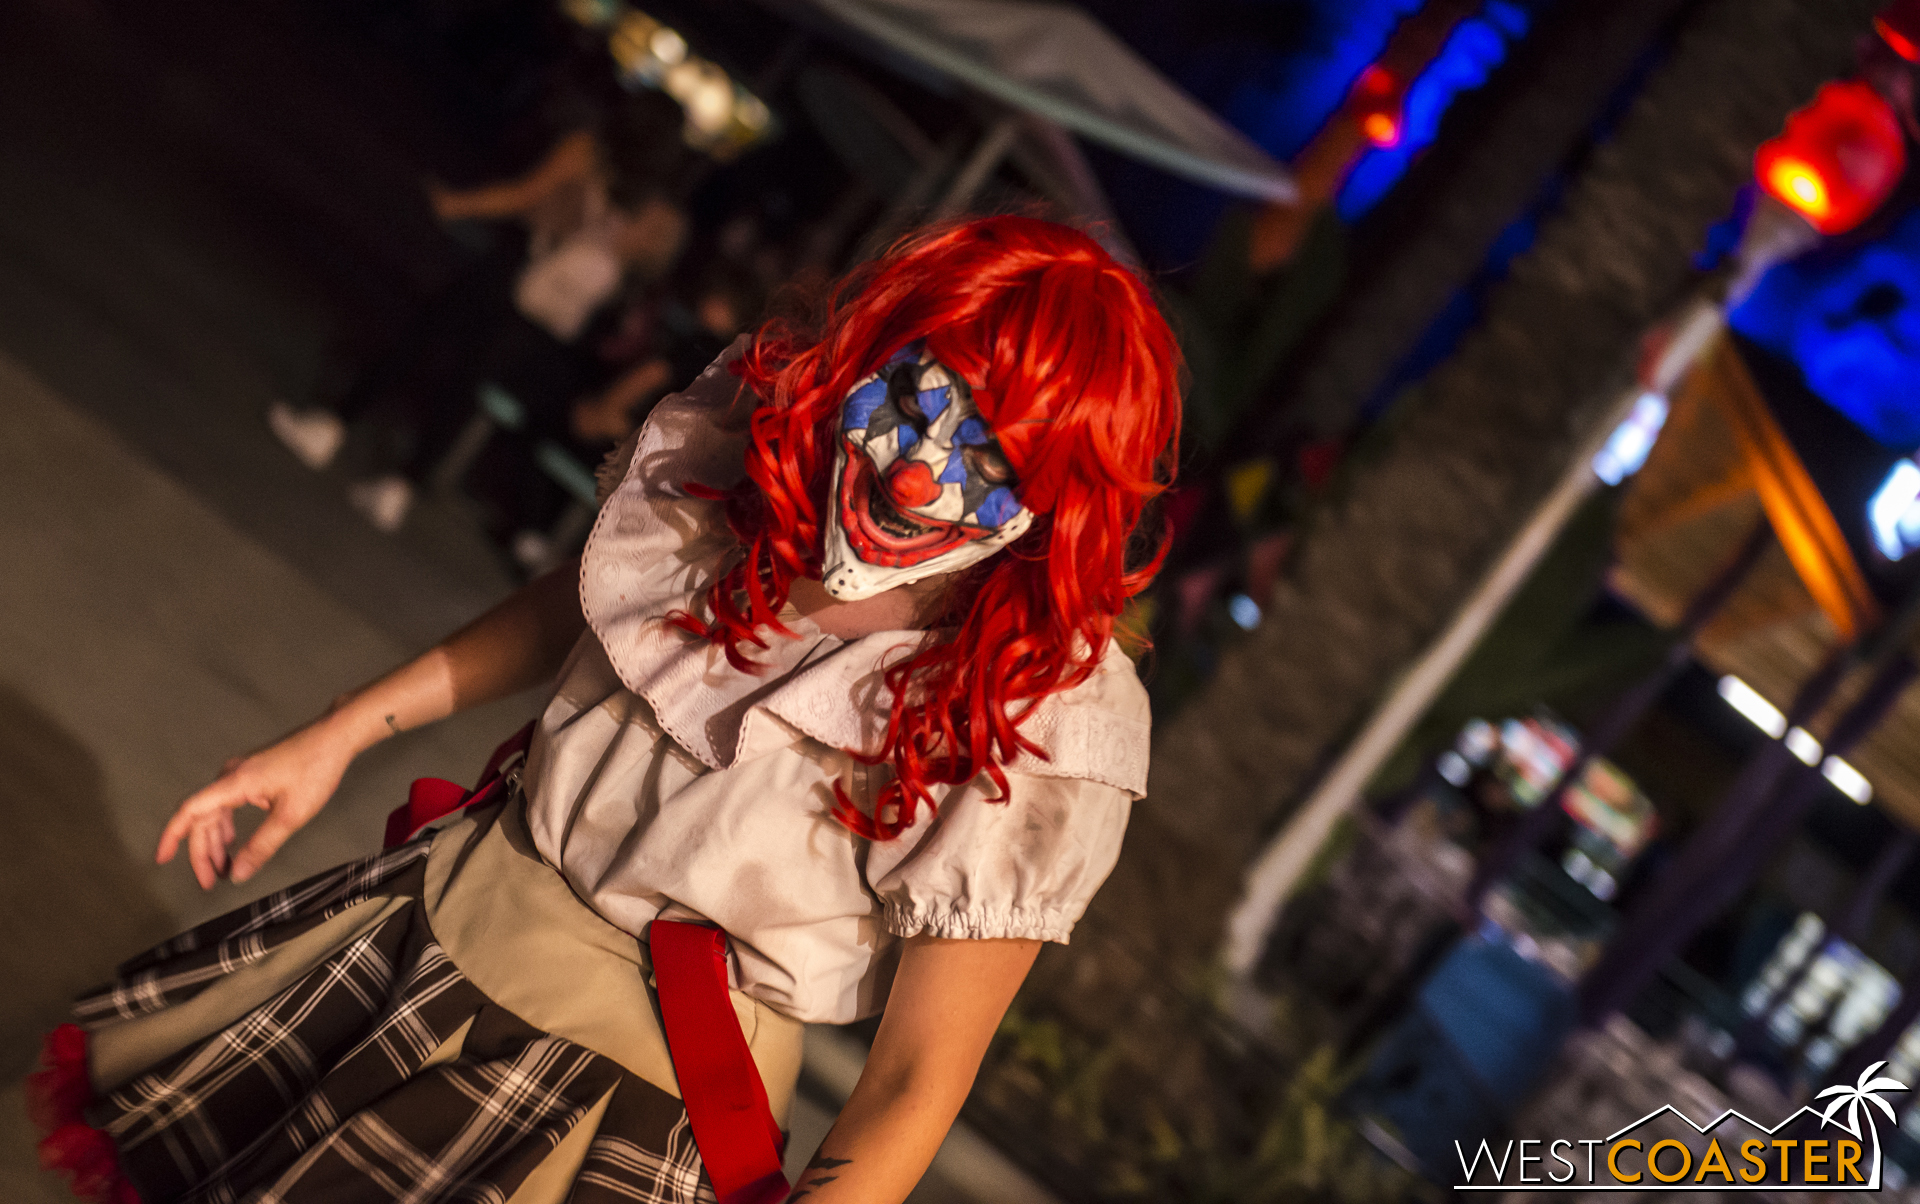 If psychotic clowns are your thing, Carnevil is the place for you!